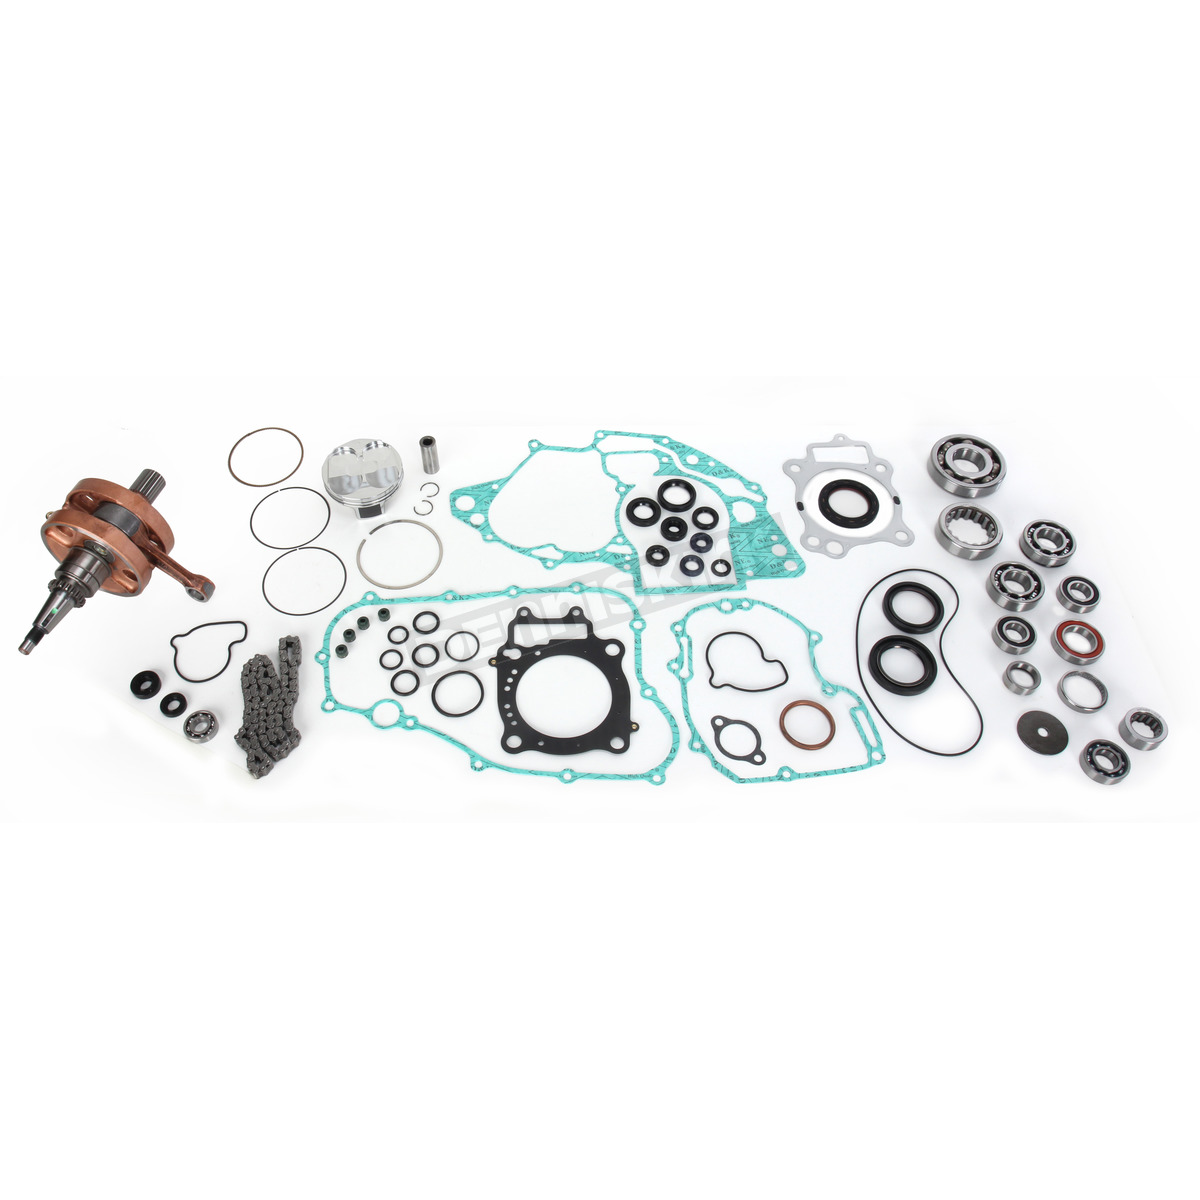 Wrench Rabbit Complete Engine Rebuild Kit 78mm Bore